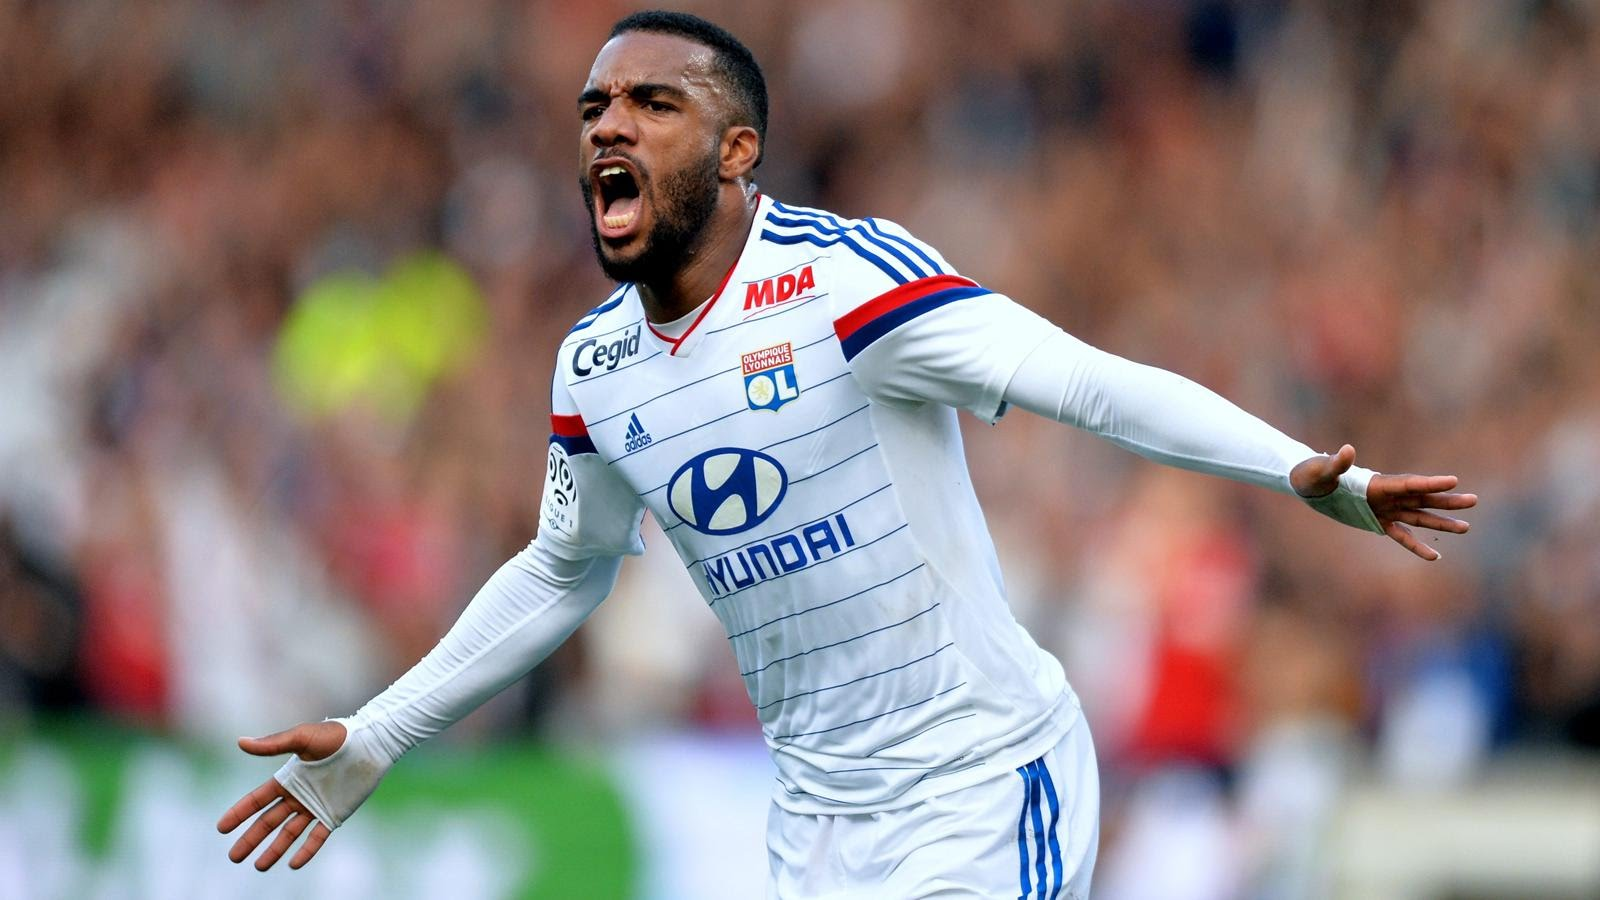 Lacazette has been linked with numerous clubs in the past few years, including Liverpool.